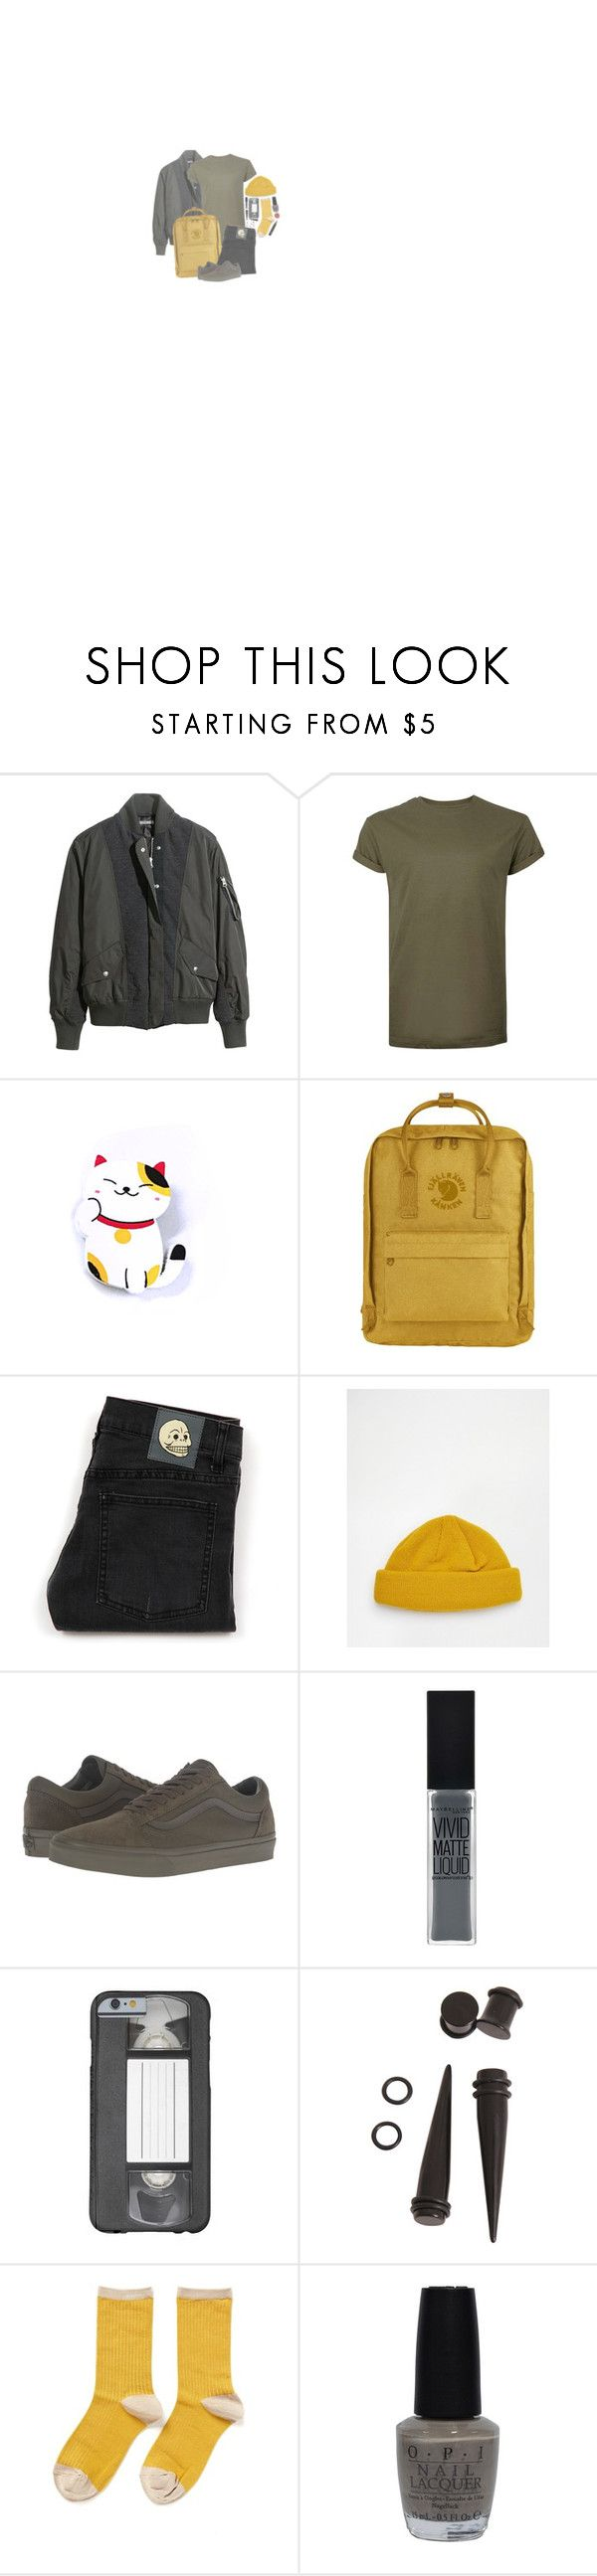 """""""I'm A Mess Right Now"""" by irondeficient ❤ liked on Polyvore featuring H&M, Topman, Fjällräven, Cheap Monday, ASOS, Vans, Hansel from Basel and OPI"""